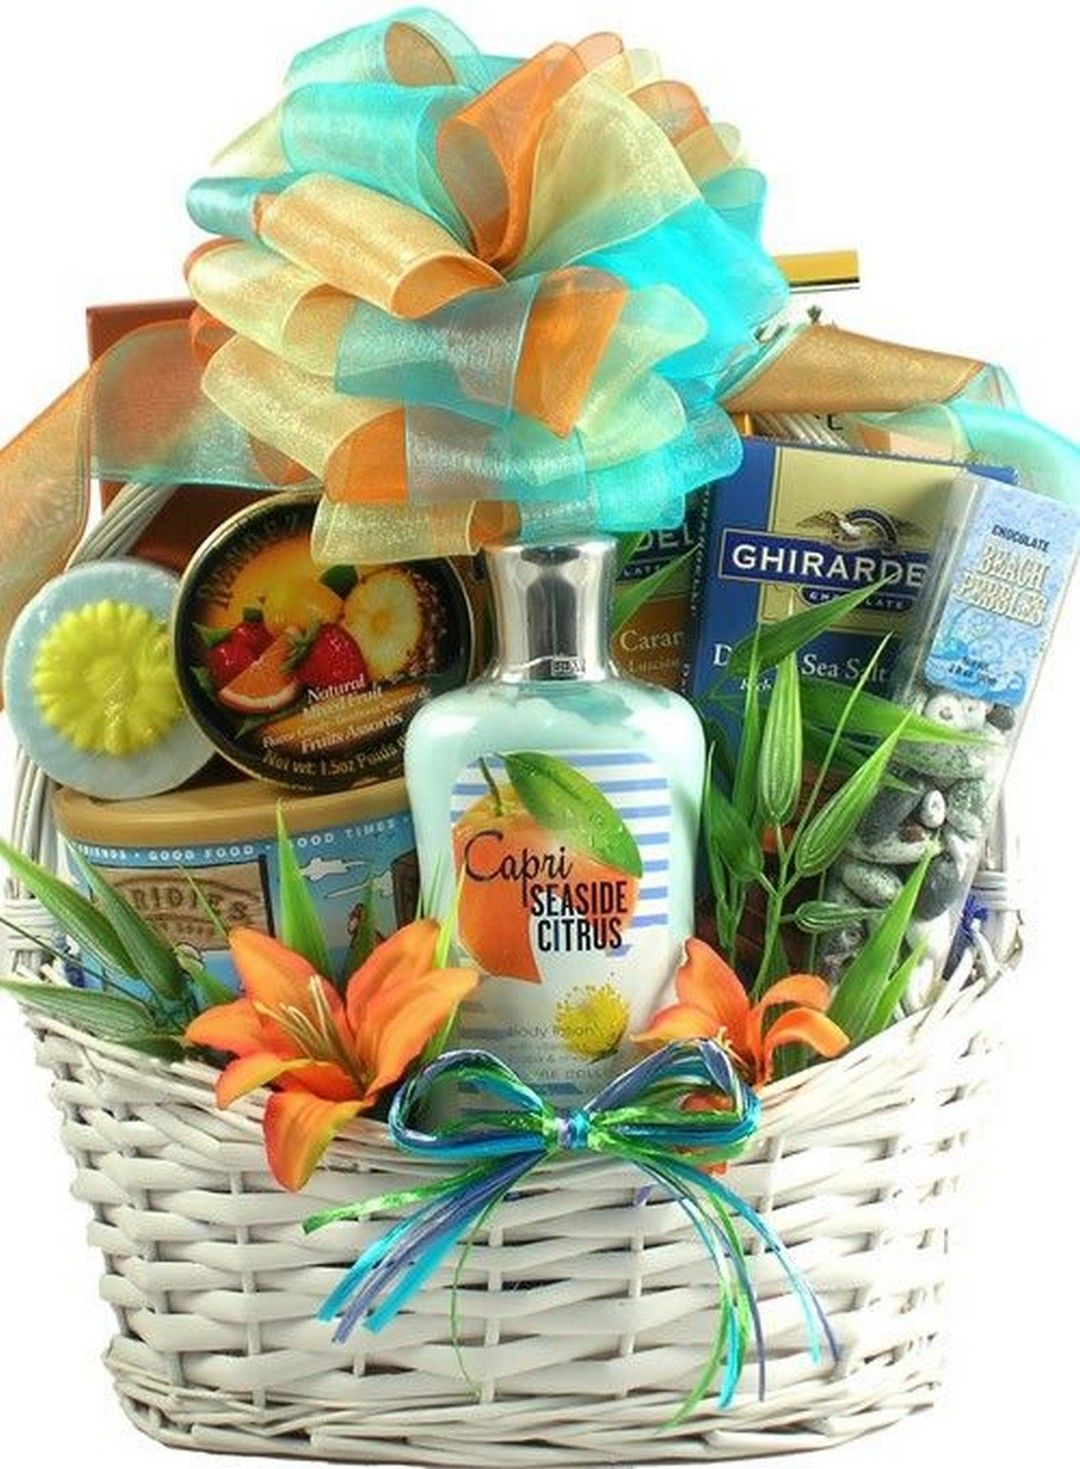 How To Easily Make Aesthetic Bathroom Gift Basket Designs Goodnewsarchitecture Gift Baskets For Women Mother S Day Gift Baskets Mothers Day Baskets